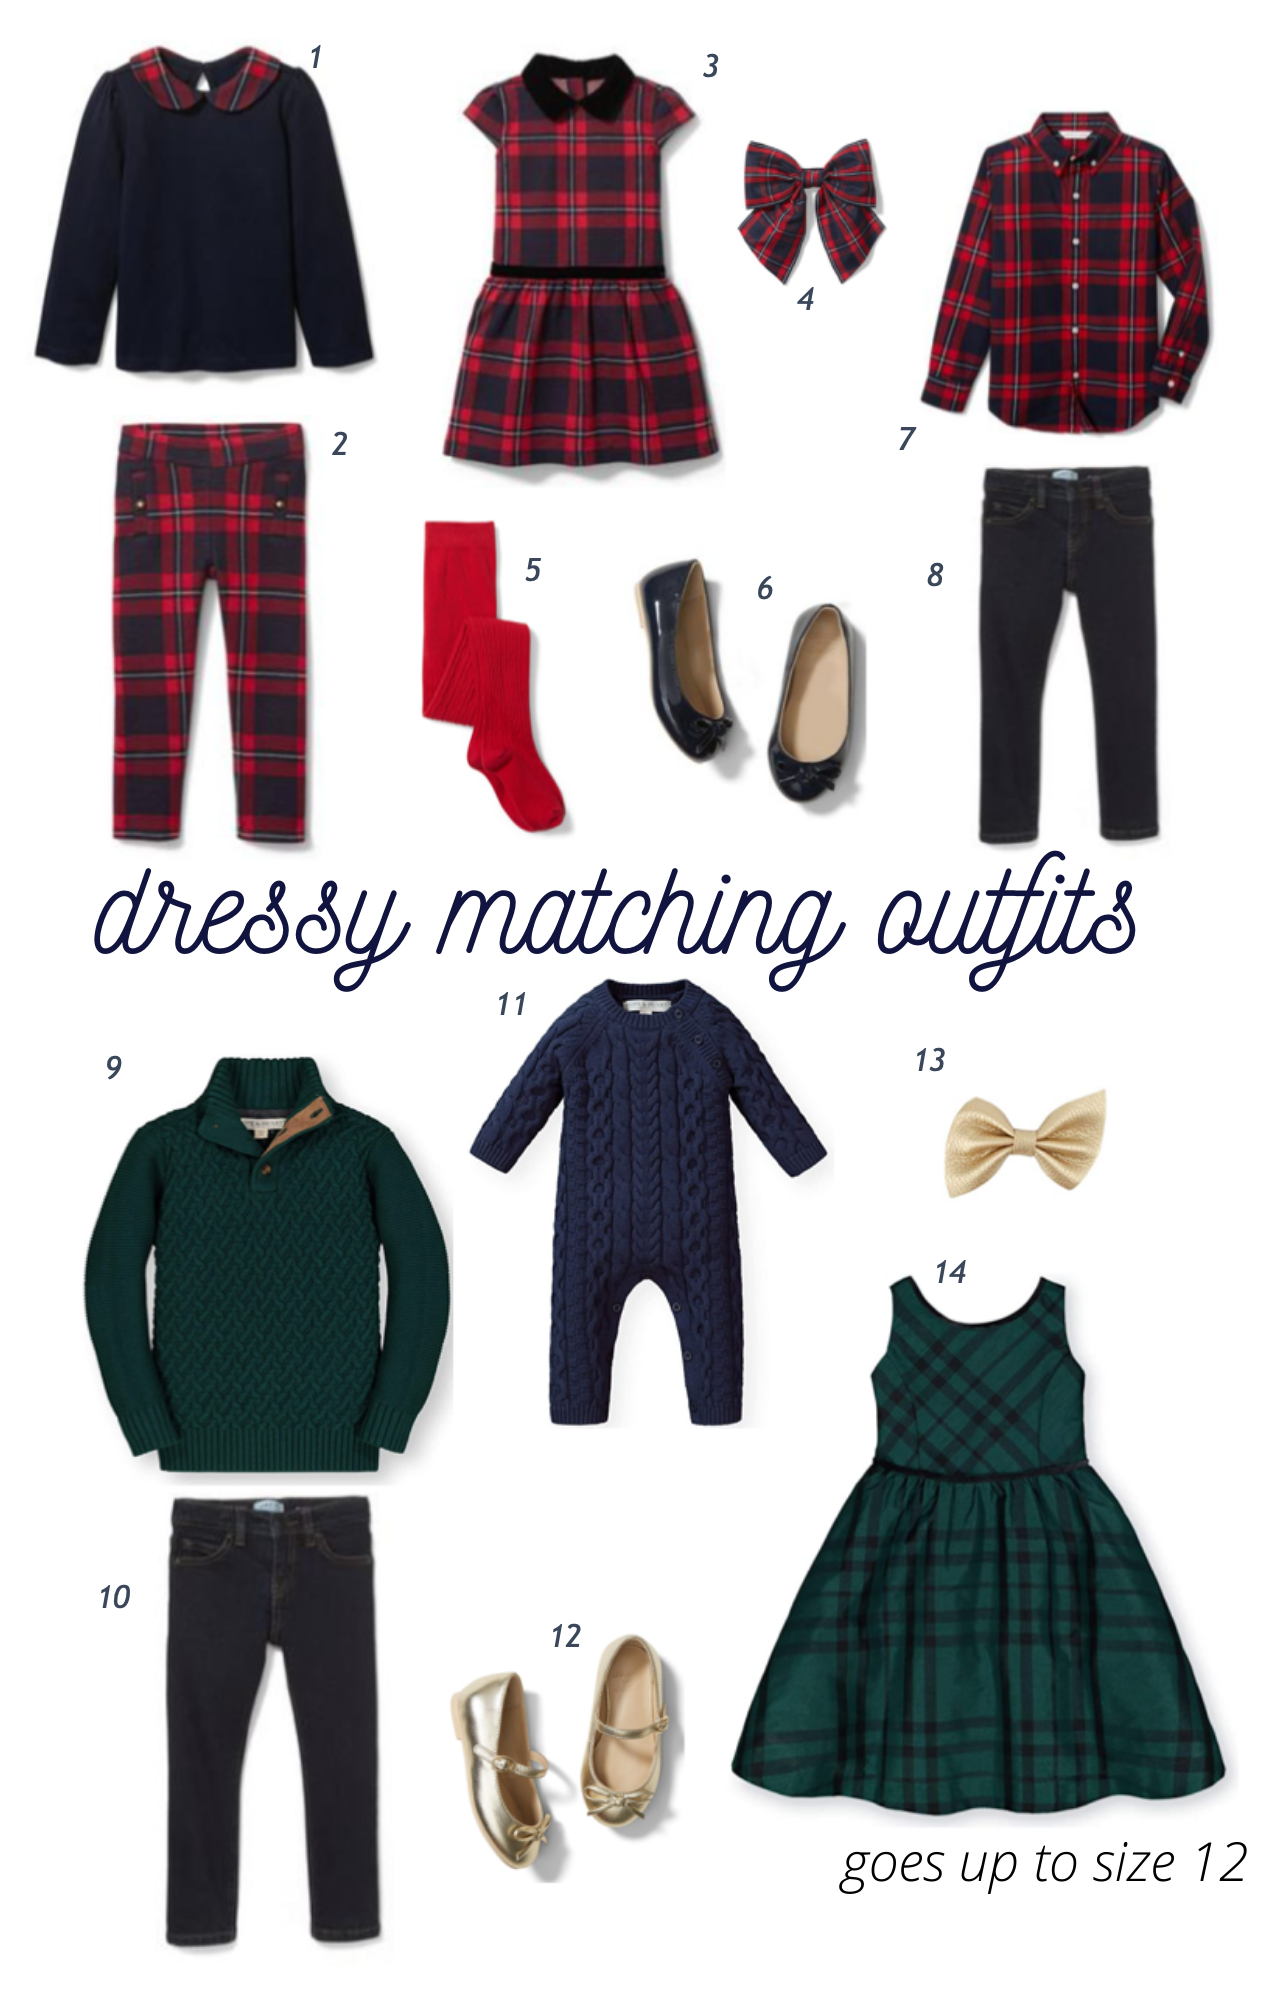 dressy matching sibling outfits for Christmas